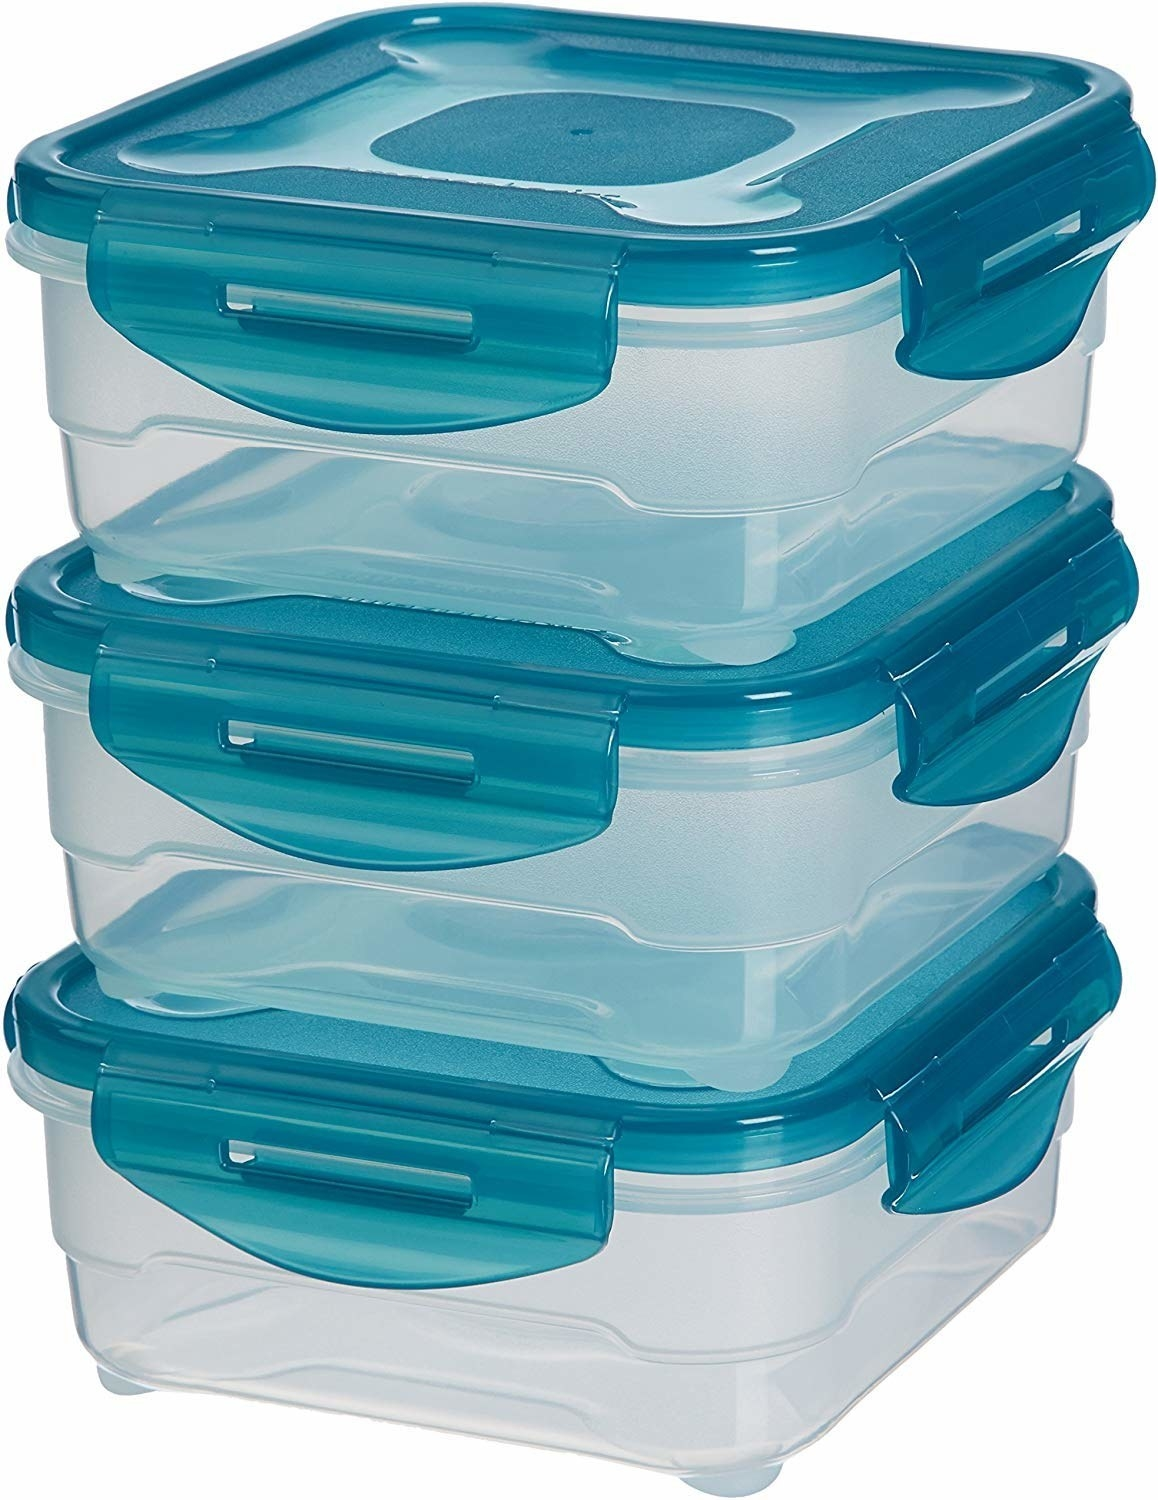 A set of airtight blue food containers